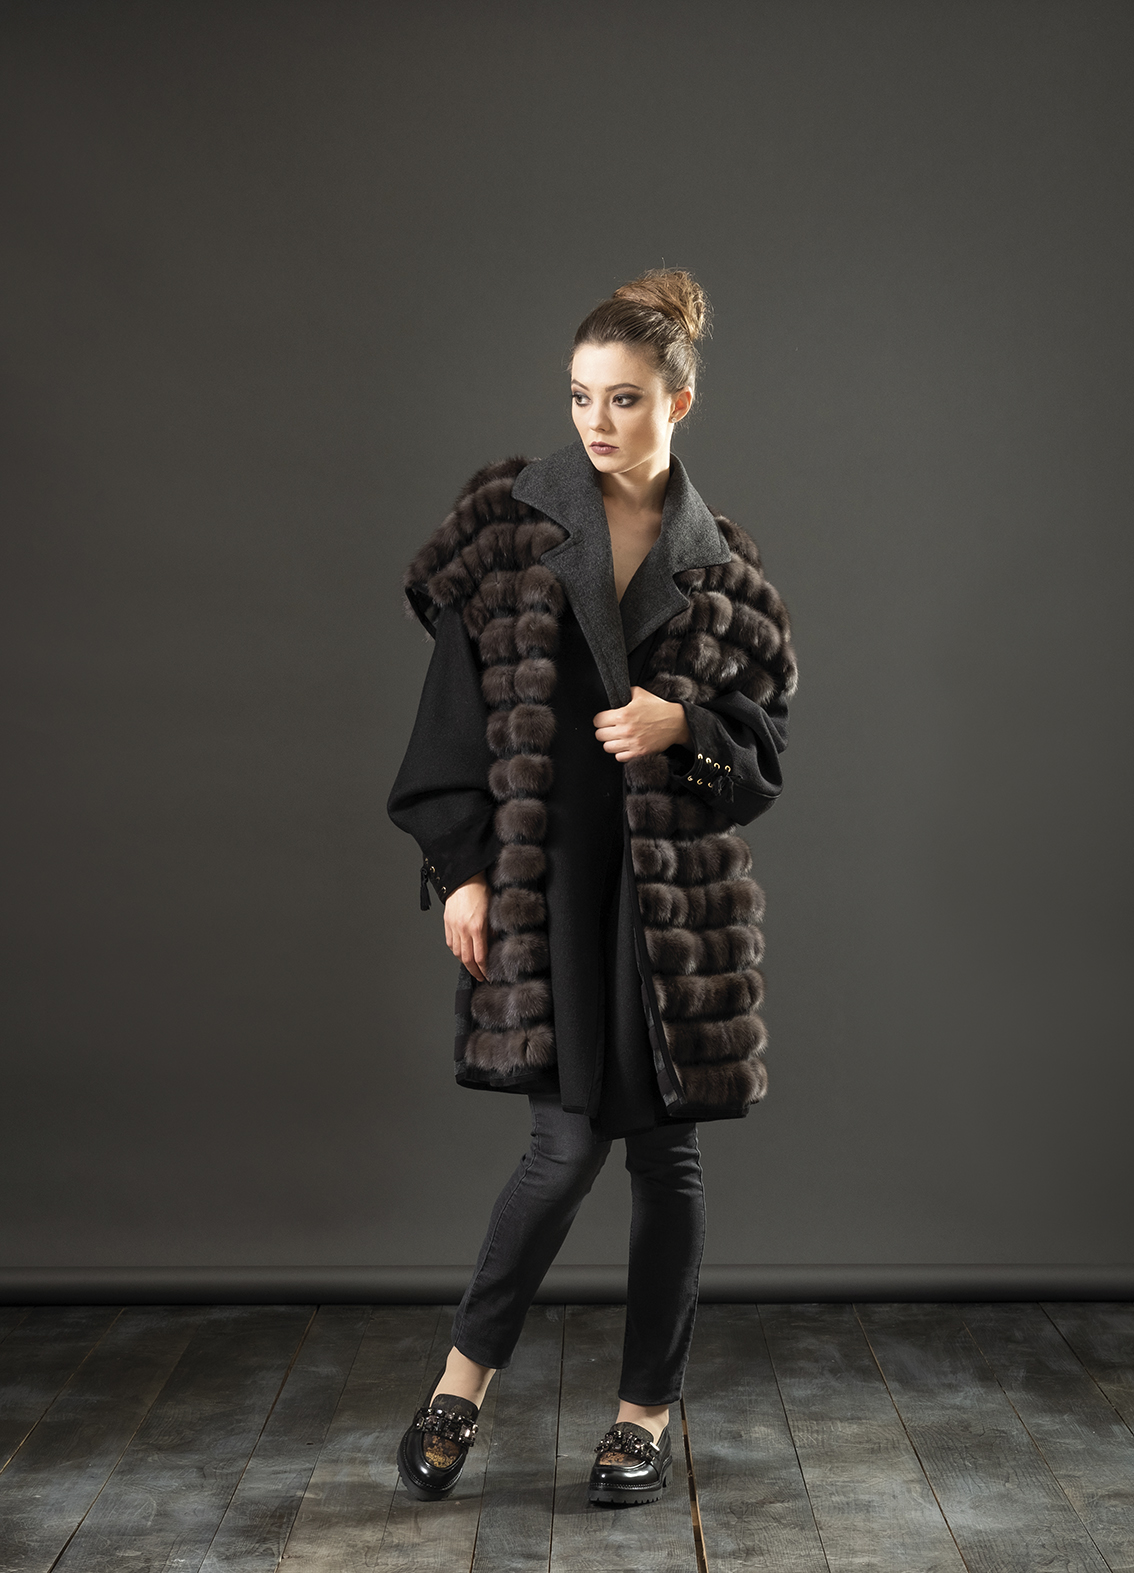 Giaccone cashmere + gilet in tulle + zibellino